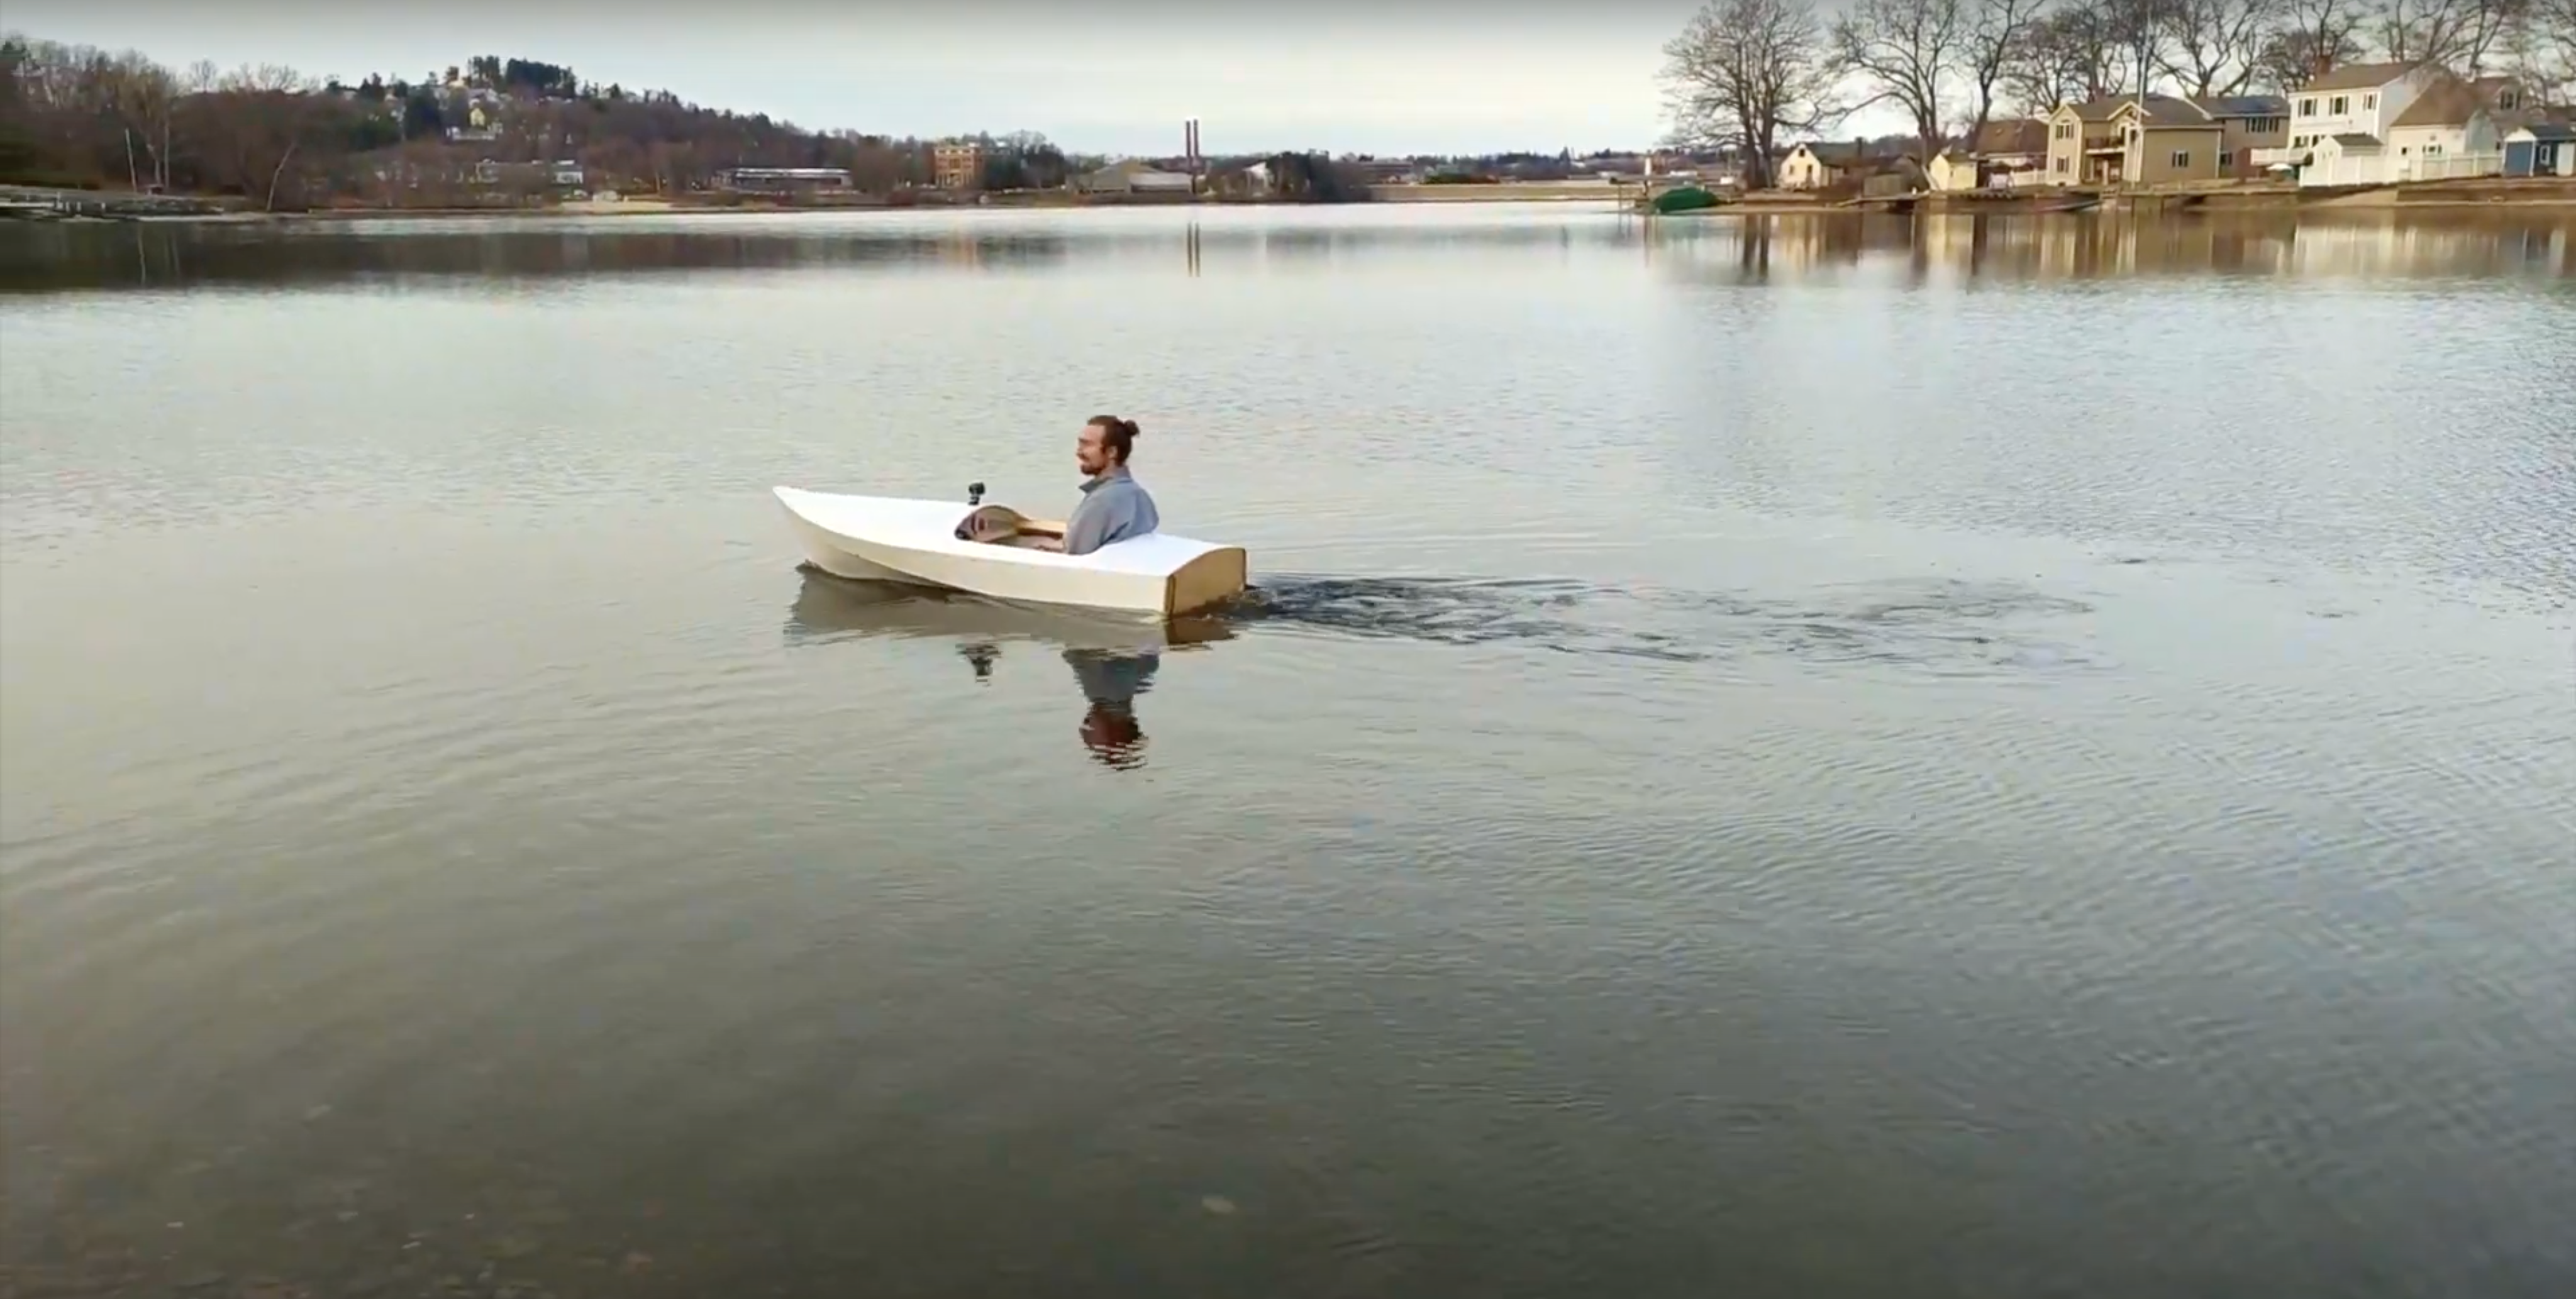 Getting the autonomous boat on the water.